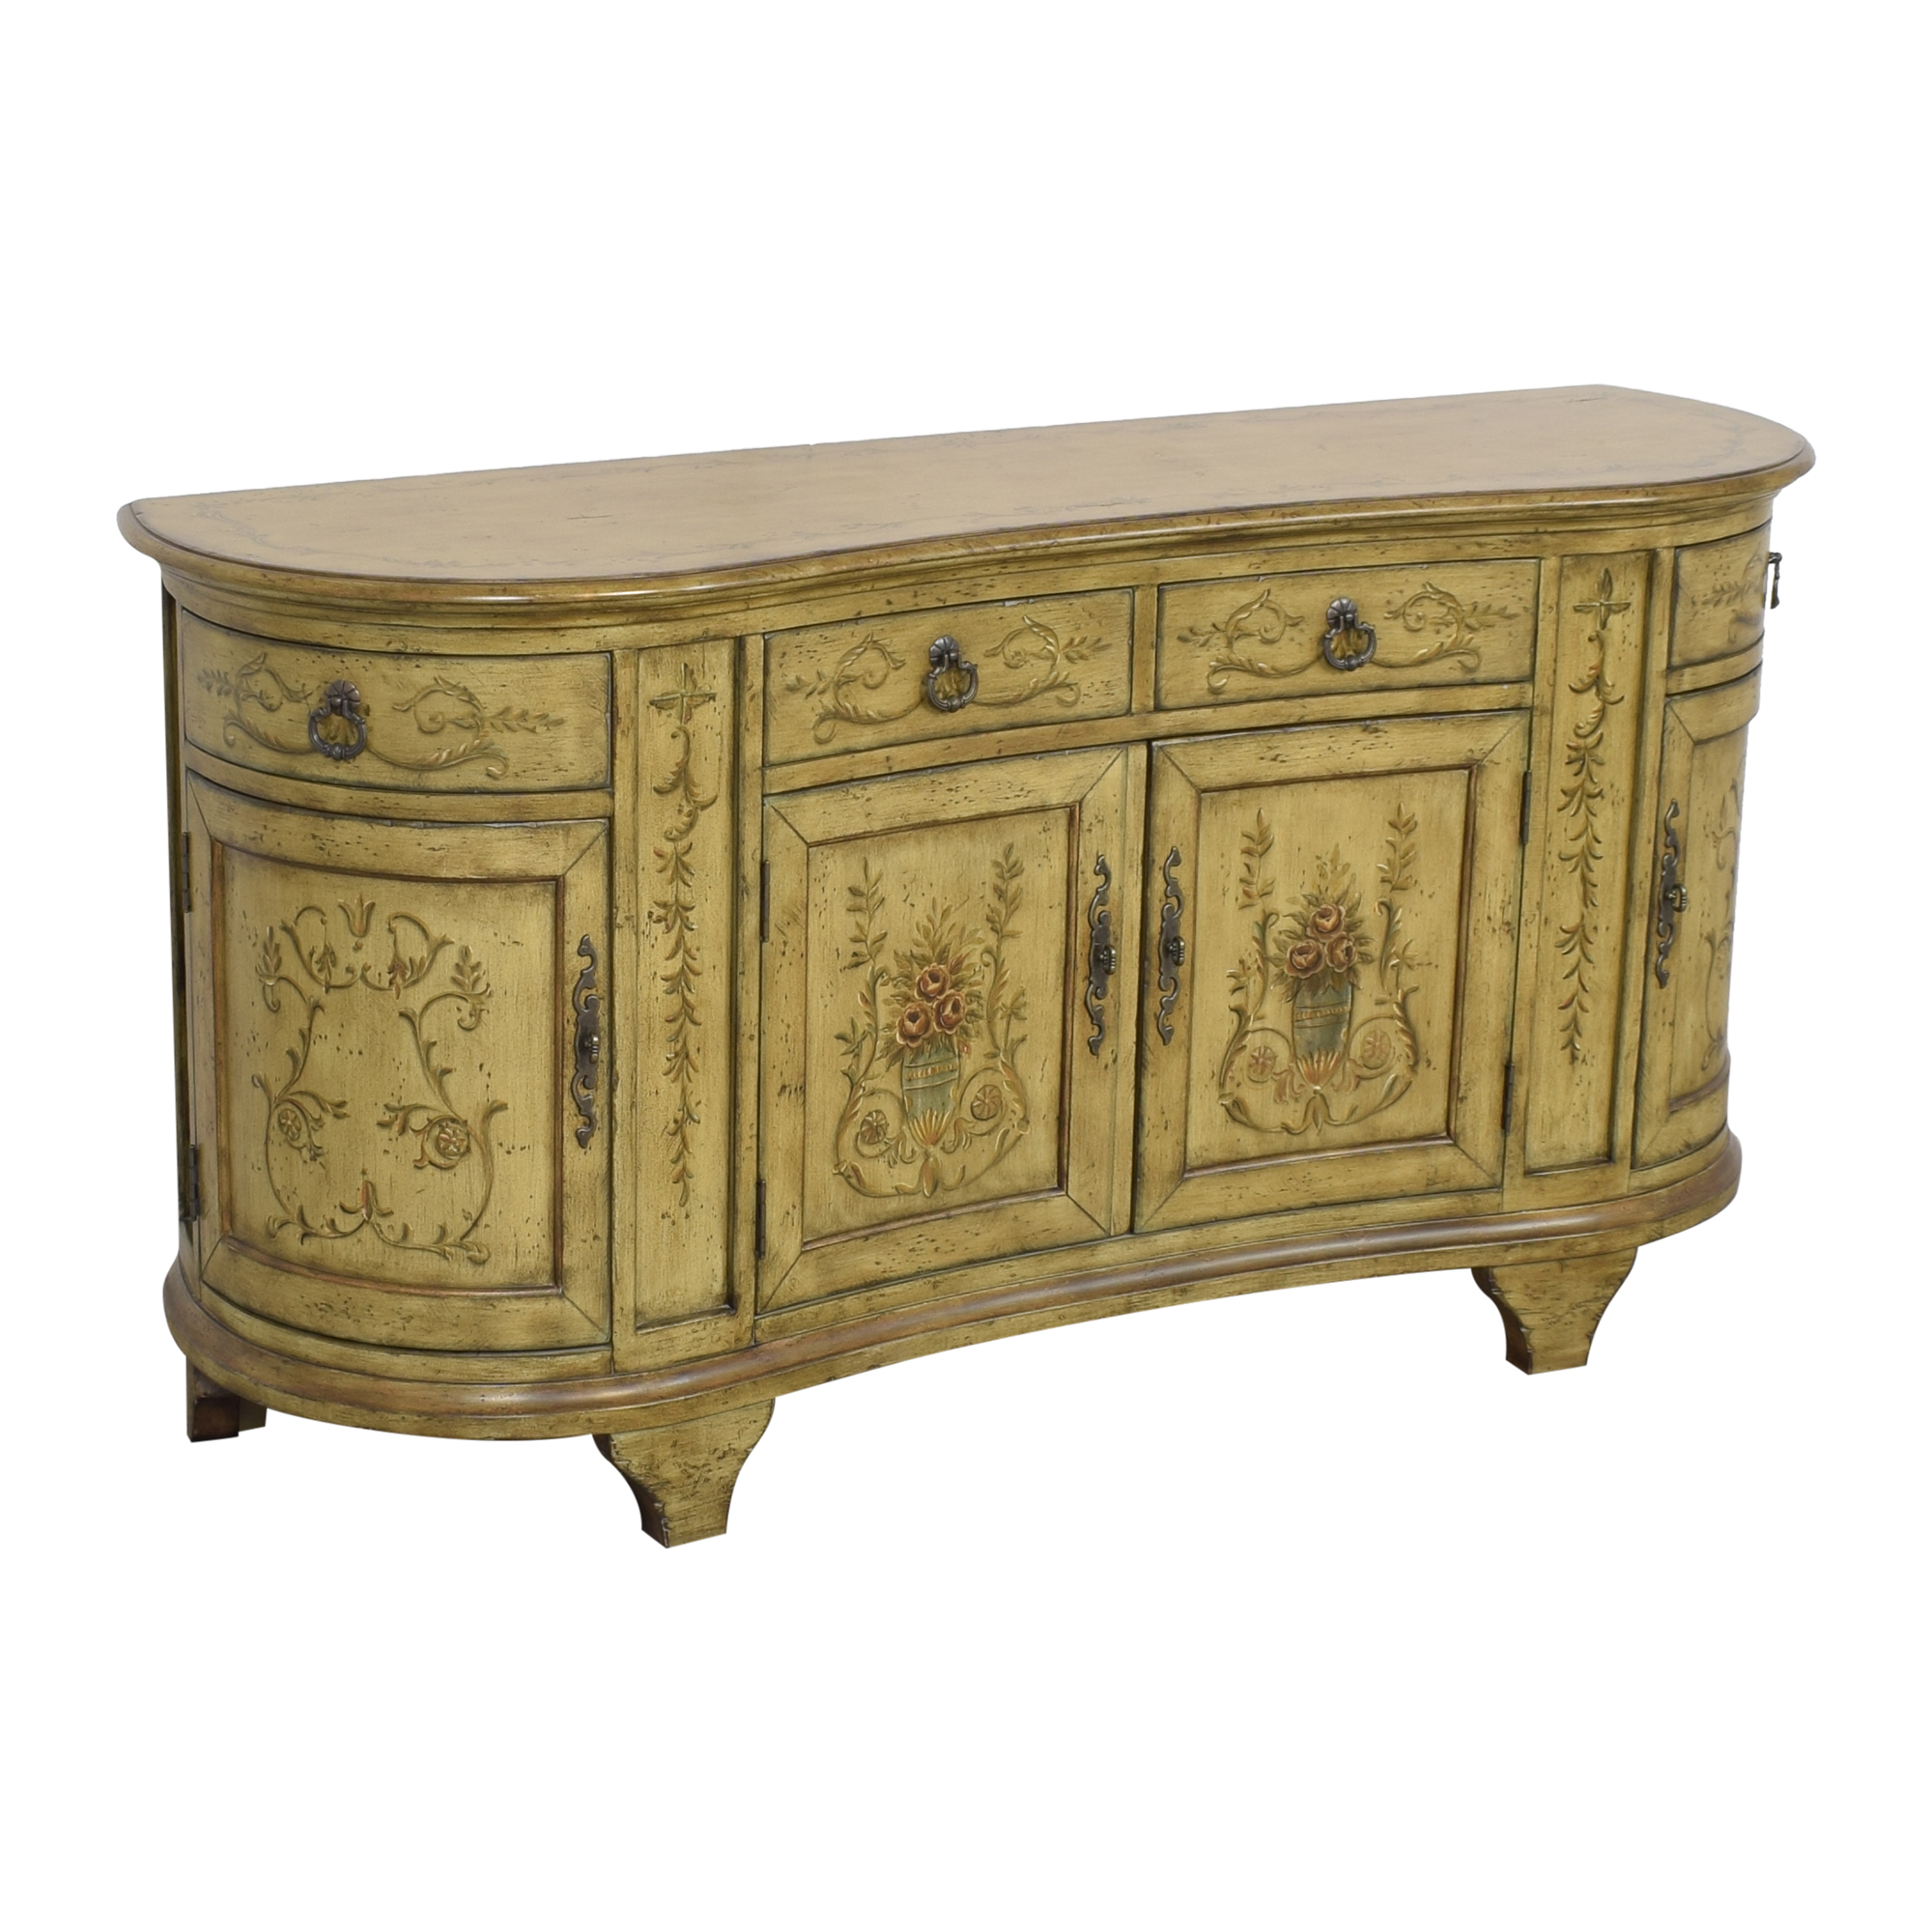 Hooker Furniture Hooker Seven Seas Sideboard nj